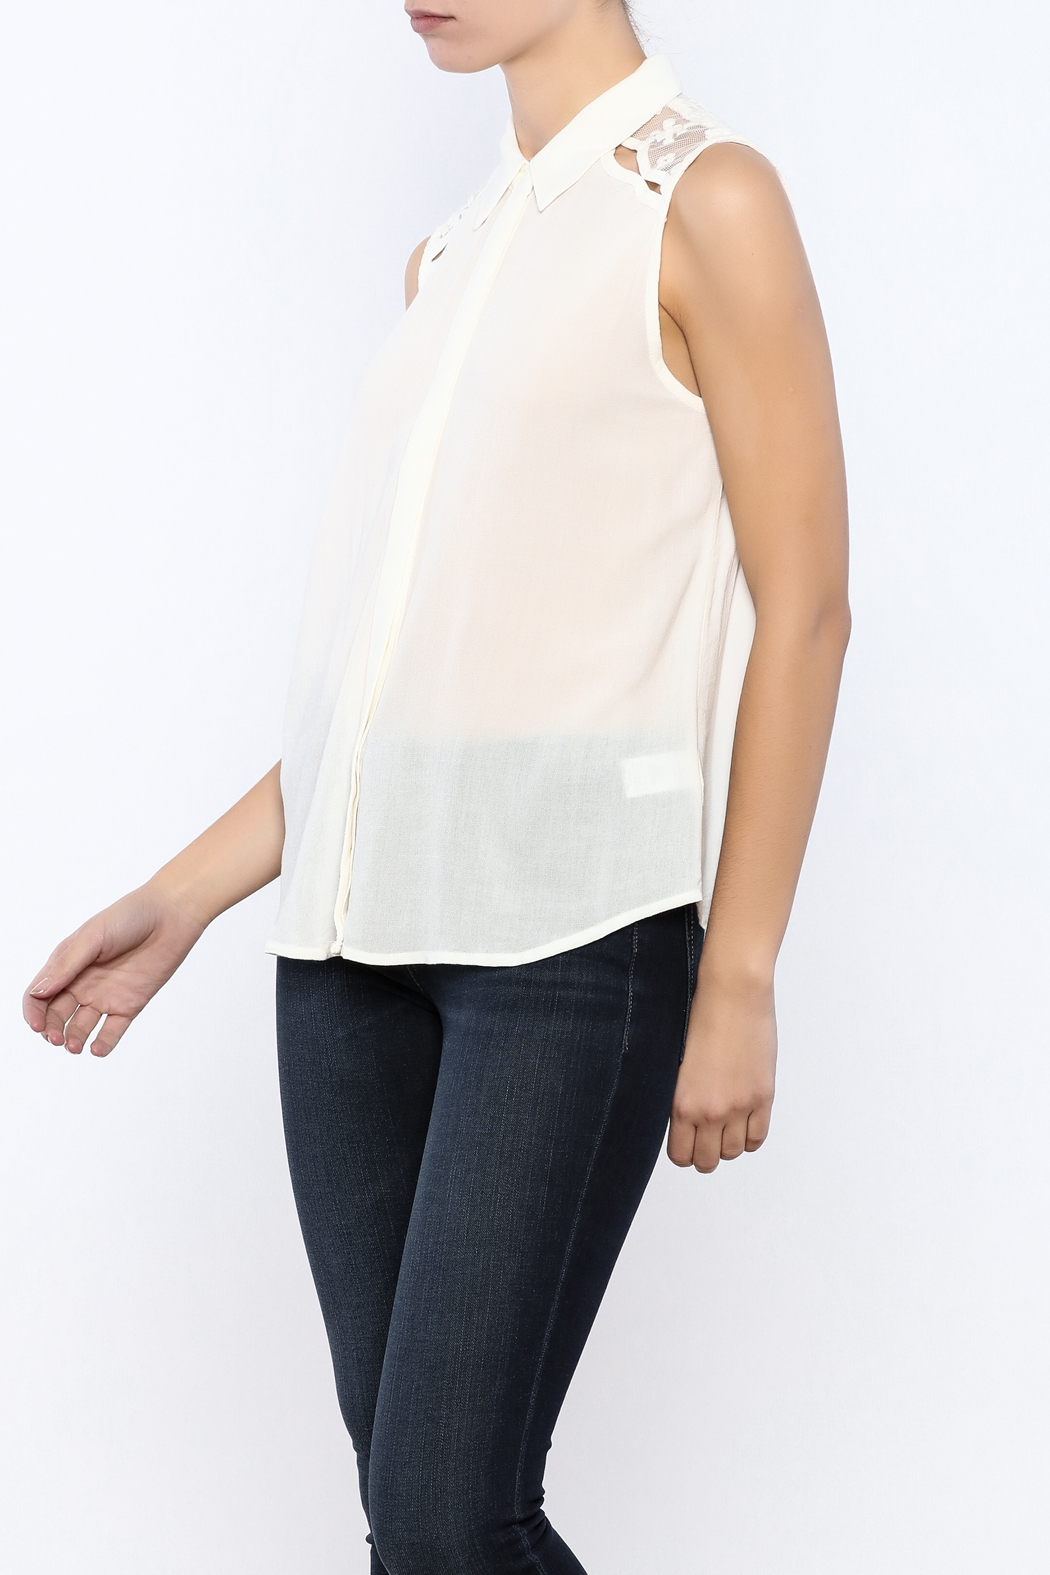 Bacio Lace Back Top - Main Image